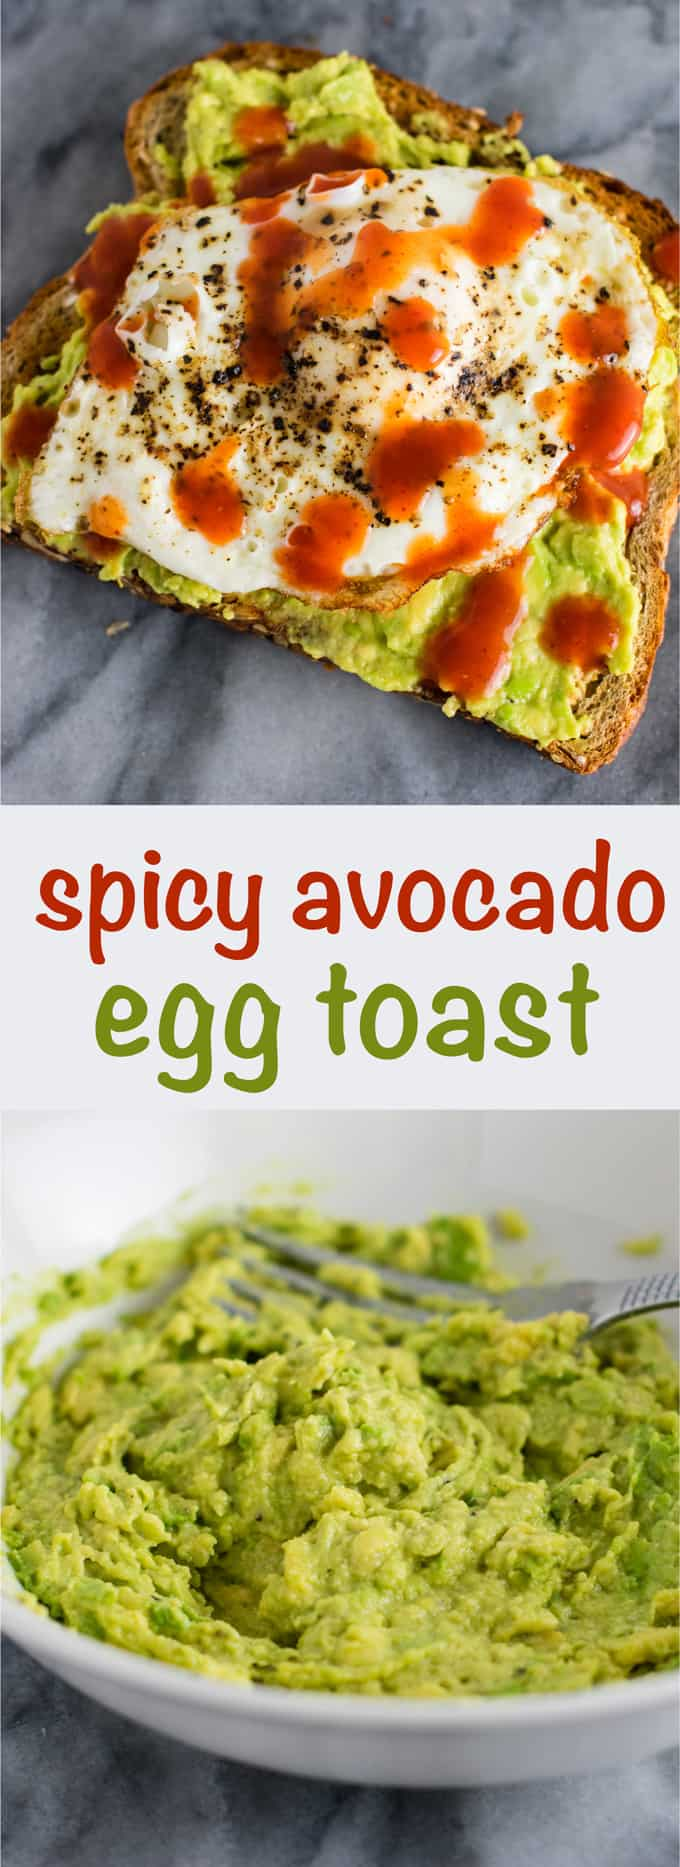 Spicy Avocado Egg Toast - really easy but so delicious. I make this all the time! #breakfast #avocadotoast #eggs #vegetarian #meatless